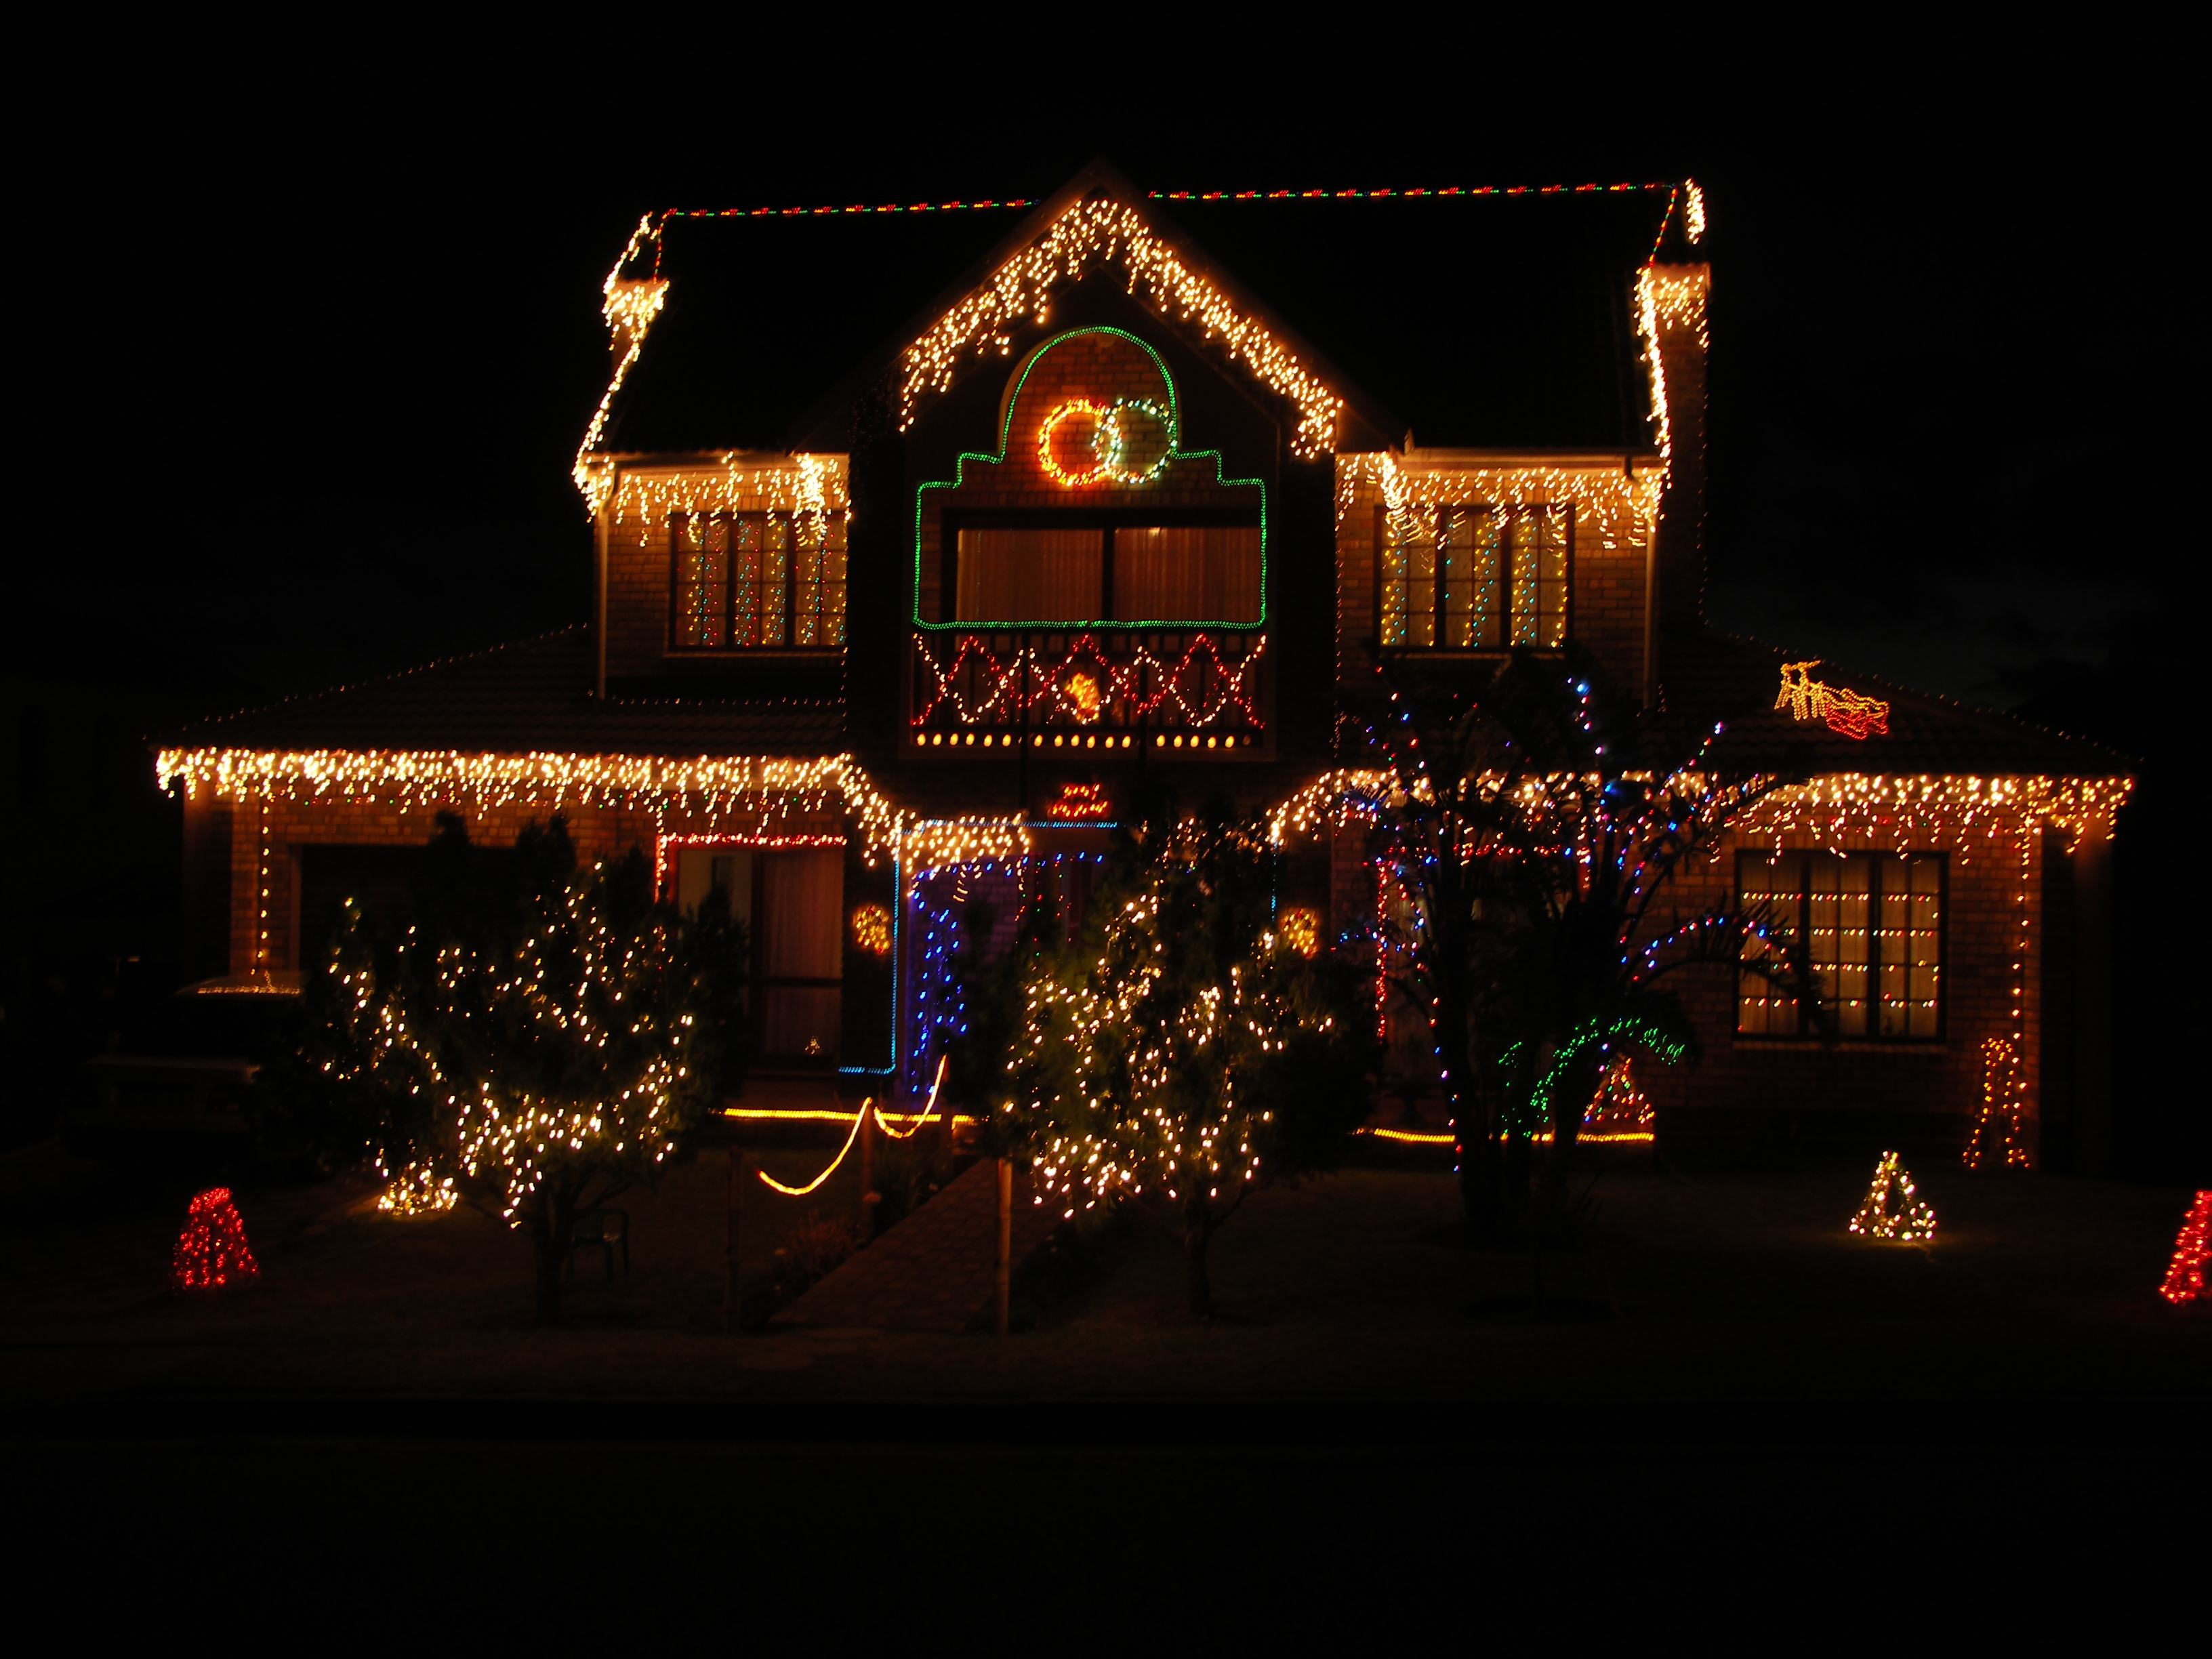 File:Jeffreys Bay-Christmas House-001.jpg - Wikimedia Commons